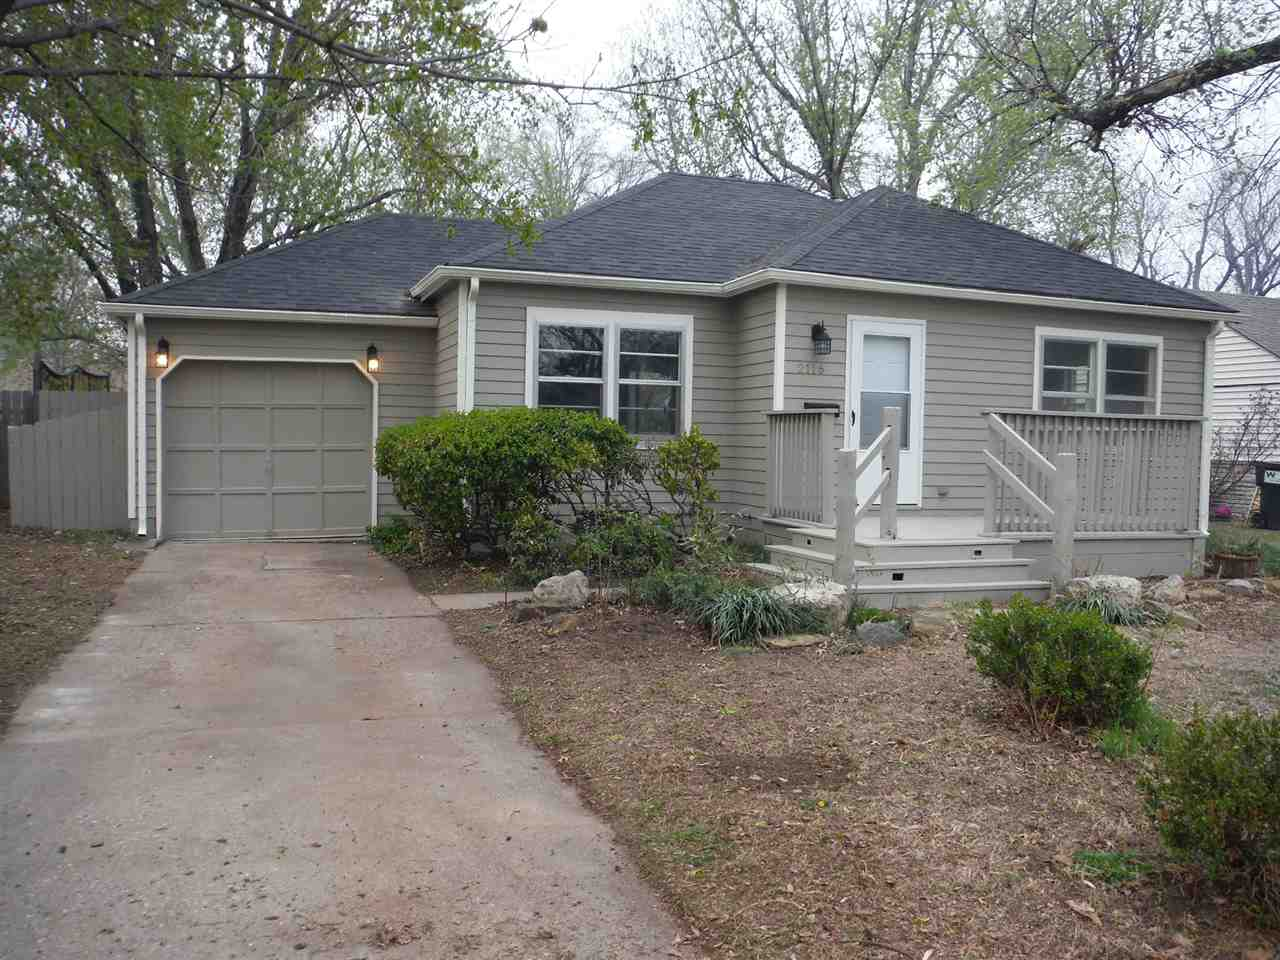 Remodeled 2 bedroom home with a basement and 1-car garage. Updated freshly painted interior and new